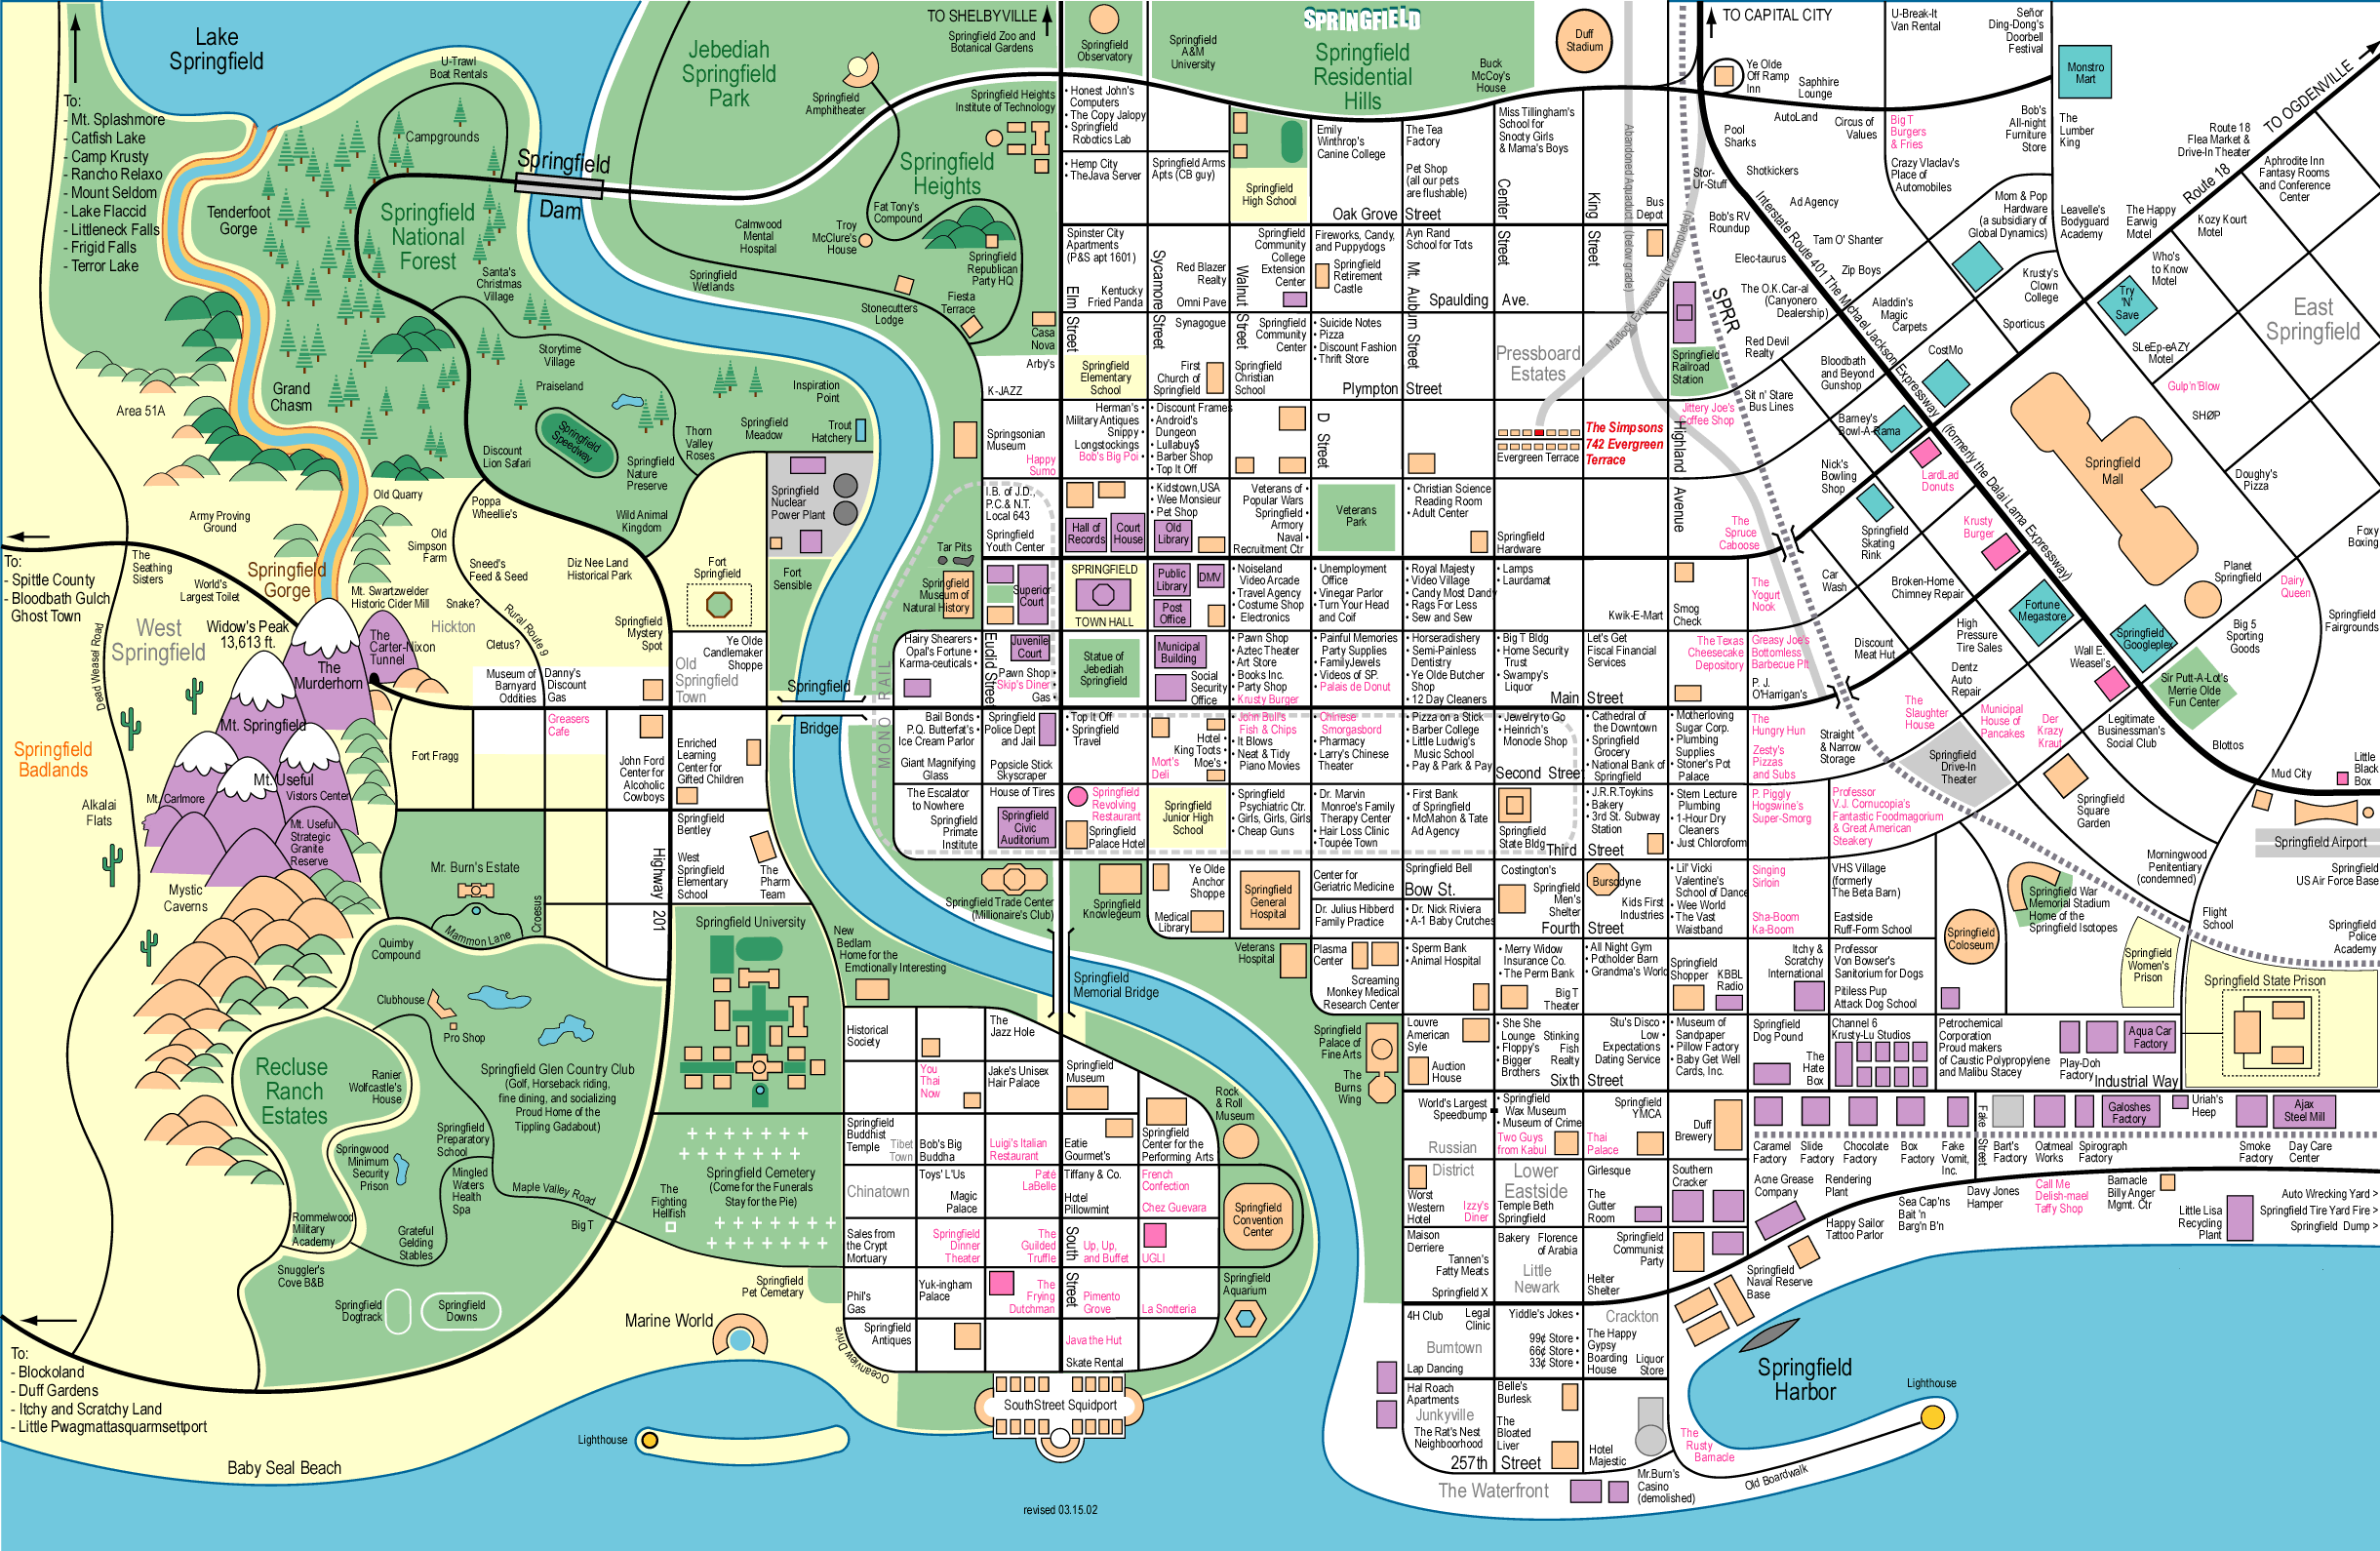 Image Map of Springfieldpng Simpsons Wiki FANDOM powered by Wikia